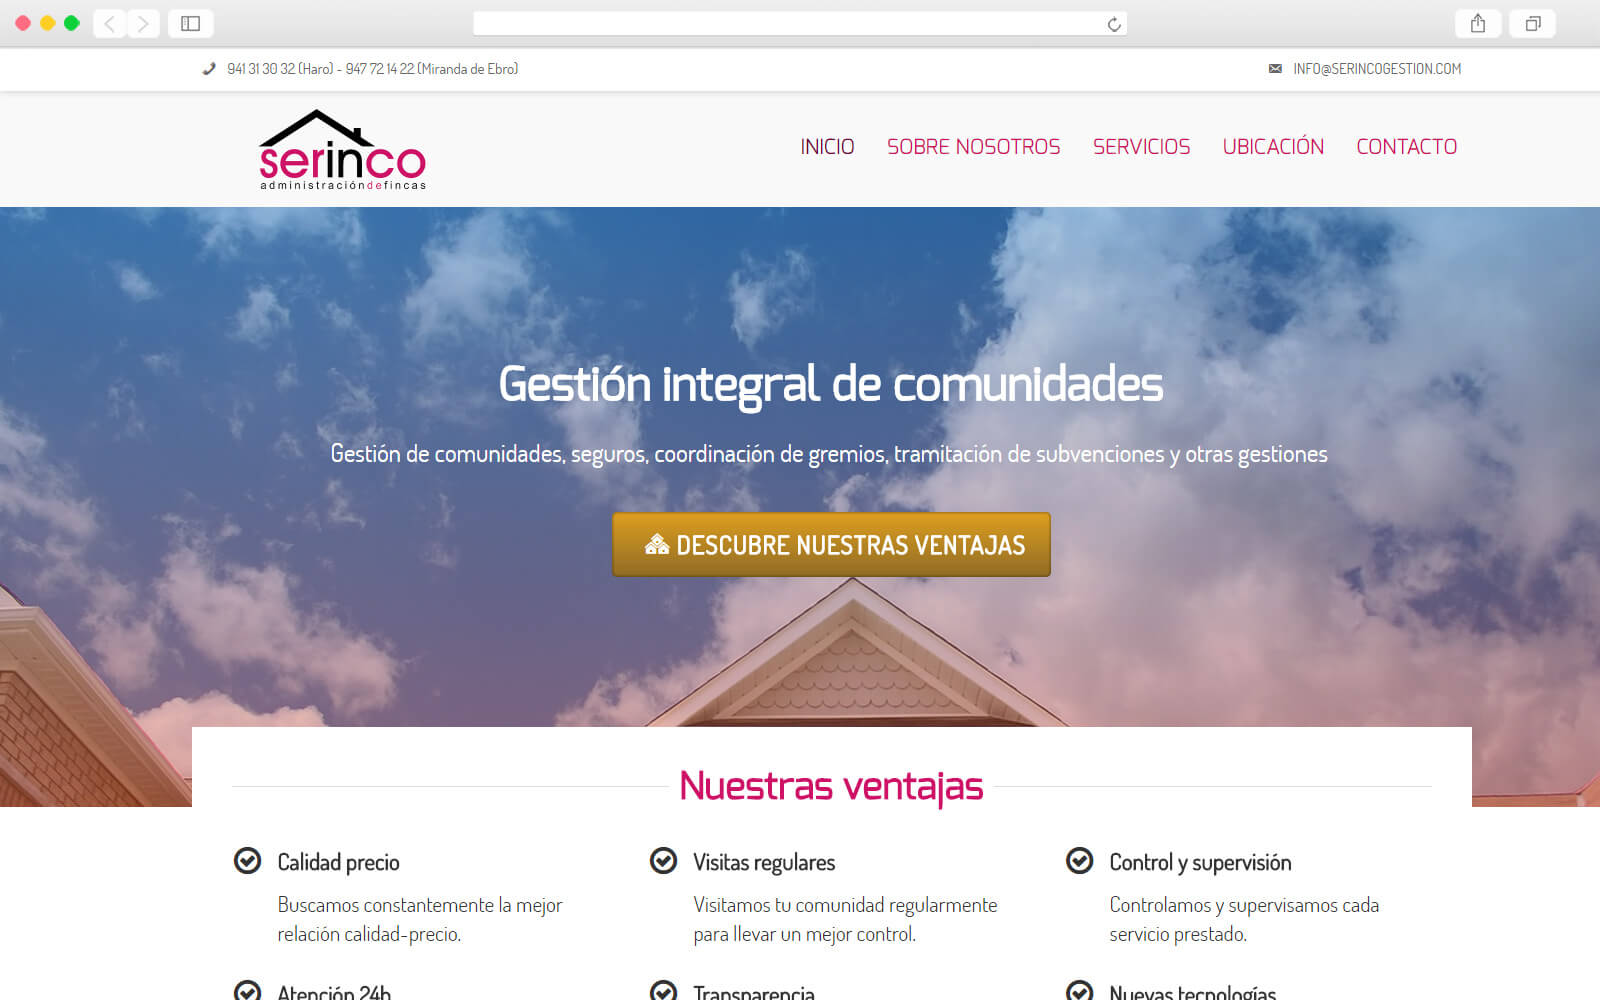 Home de Serinco Gestión Integrada